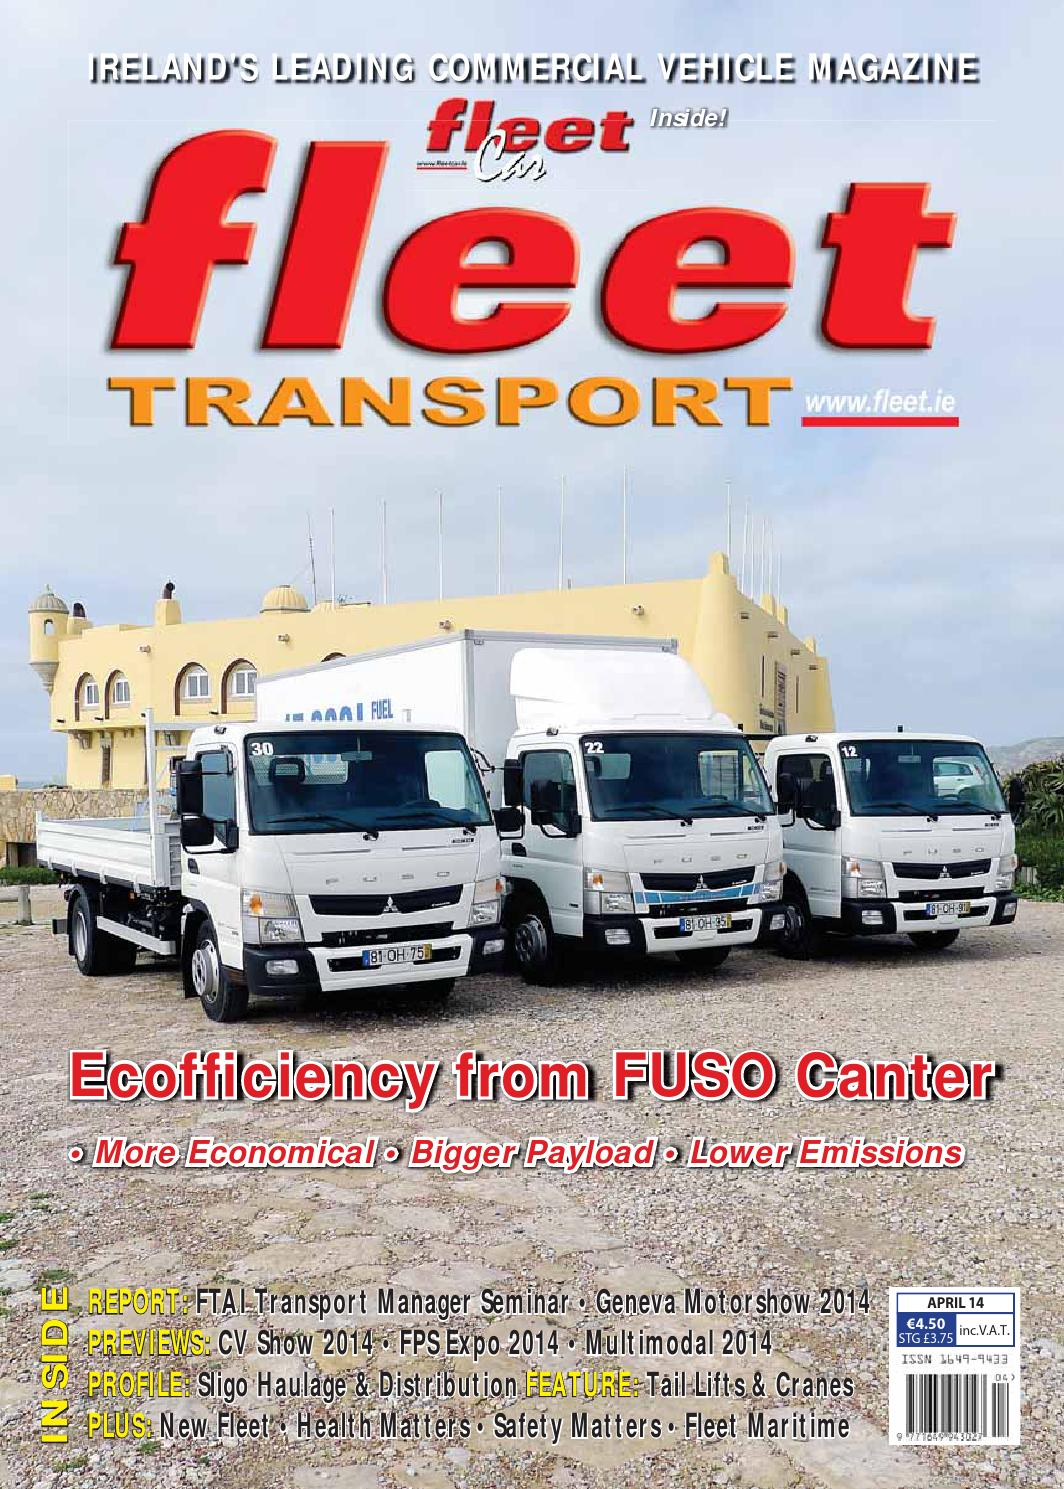 Attractive Fleet Transport April 2014 By Orla Sweeney   Issuu